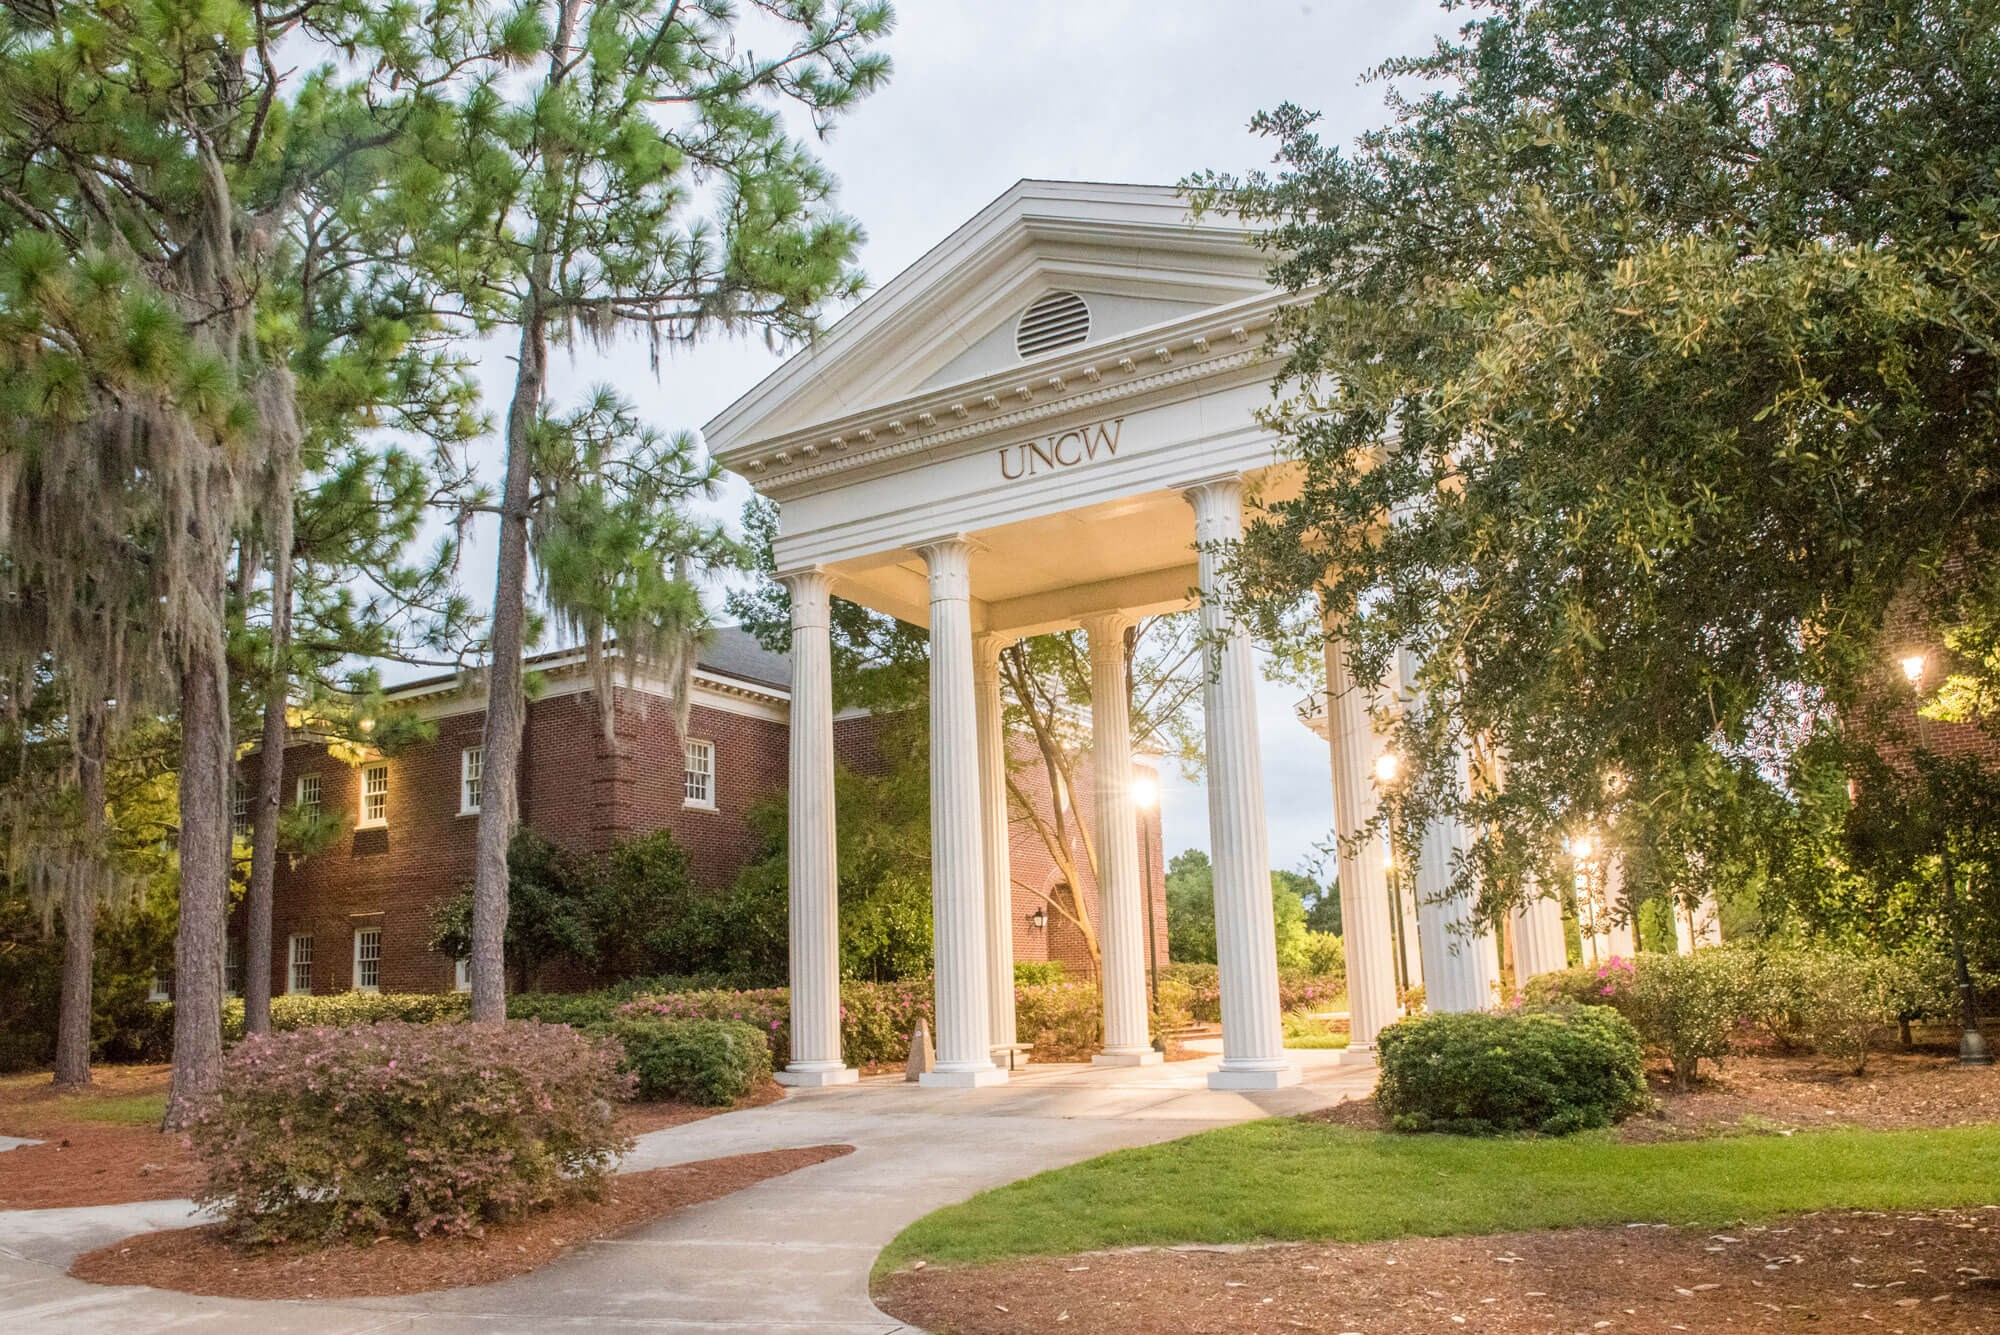 UNCW - Morton Hall